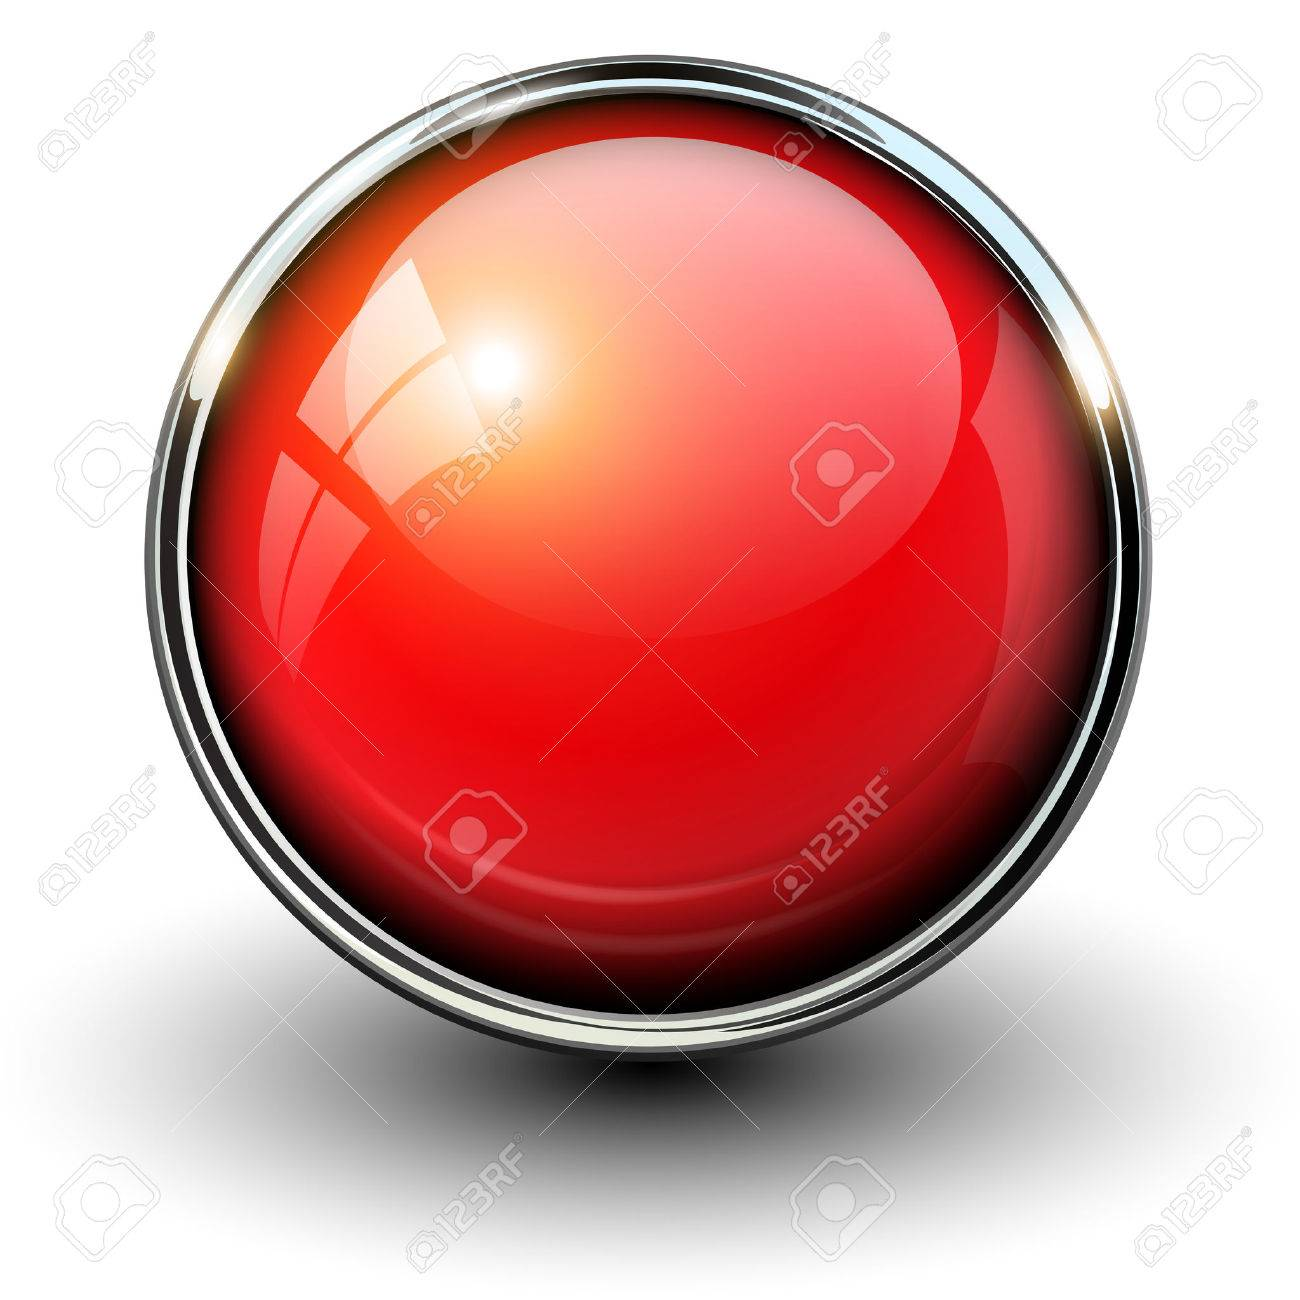 Red shiny button with metallic elements, vector design for website. - 40955288